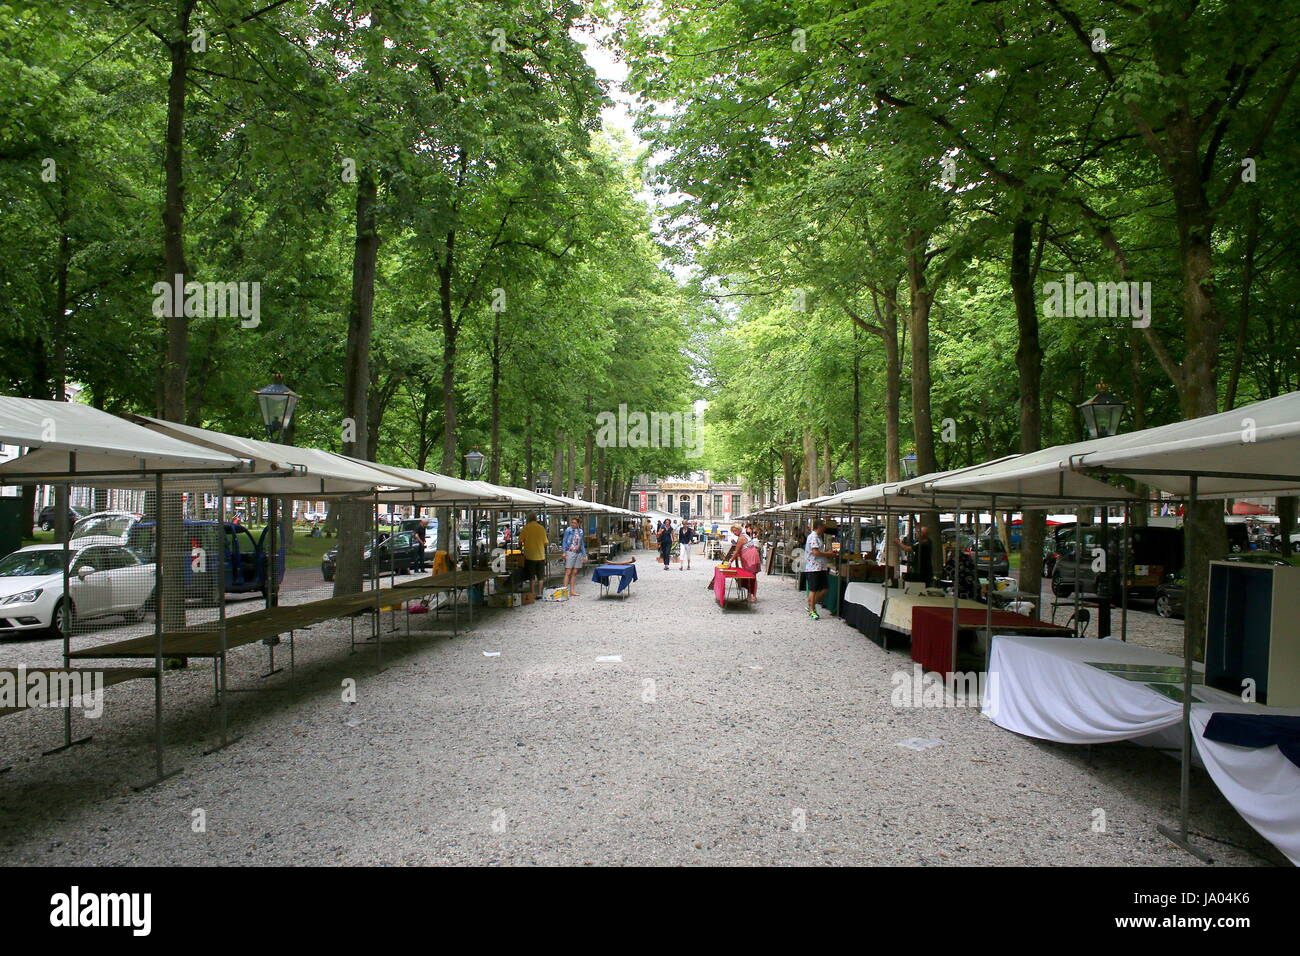 Sunday Antique and Book Market Lange Voorhout boulevard, central Den Haag (The Hague), Netherlands - Stock Image